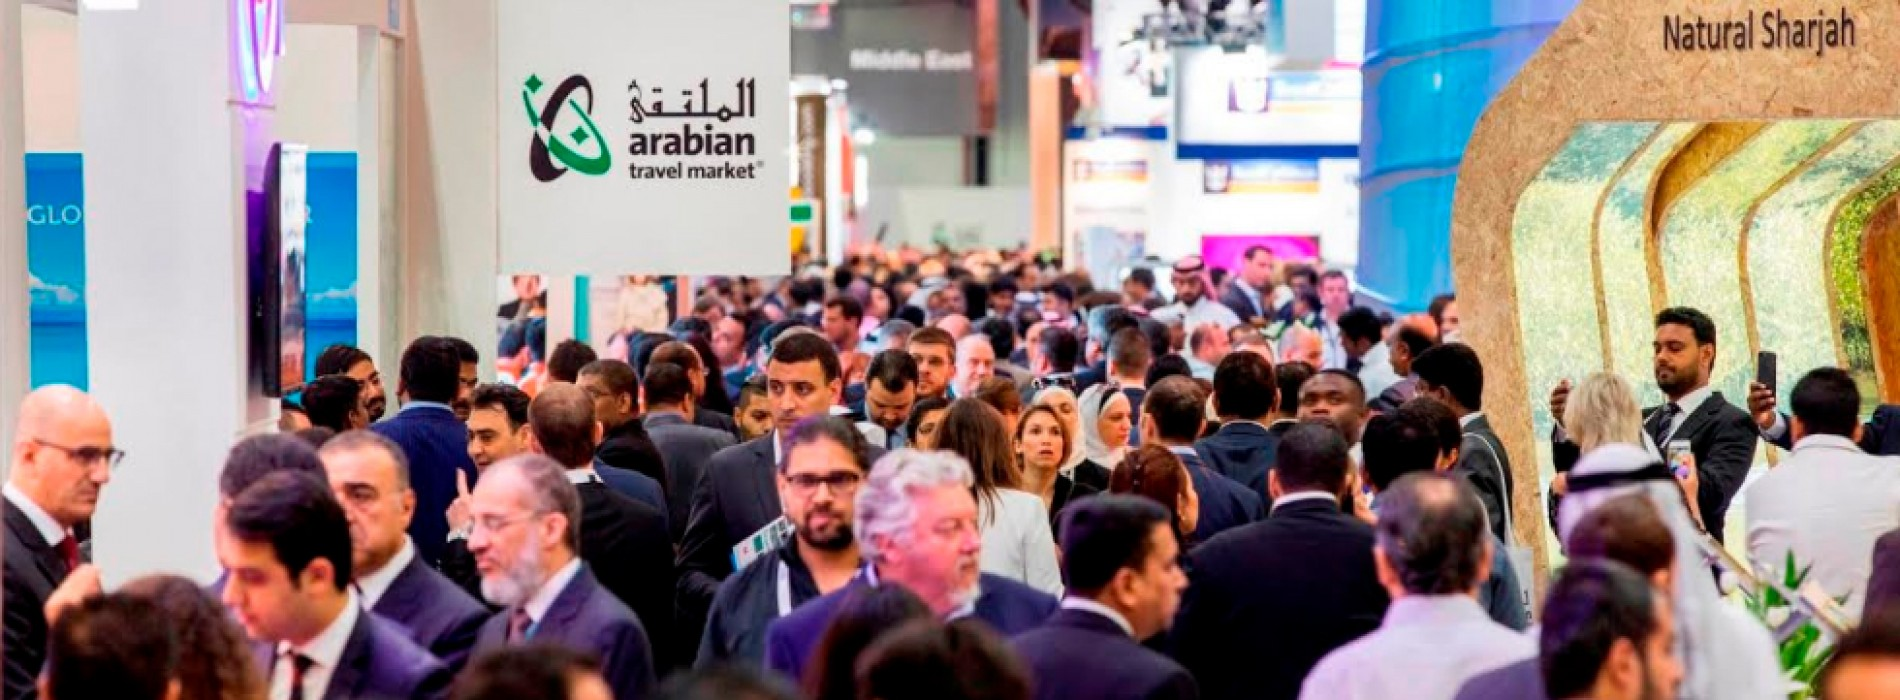 GCC to welcome 2.5 million Chinese visitors by 2021